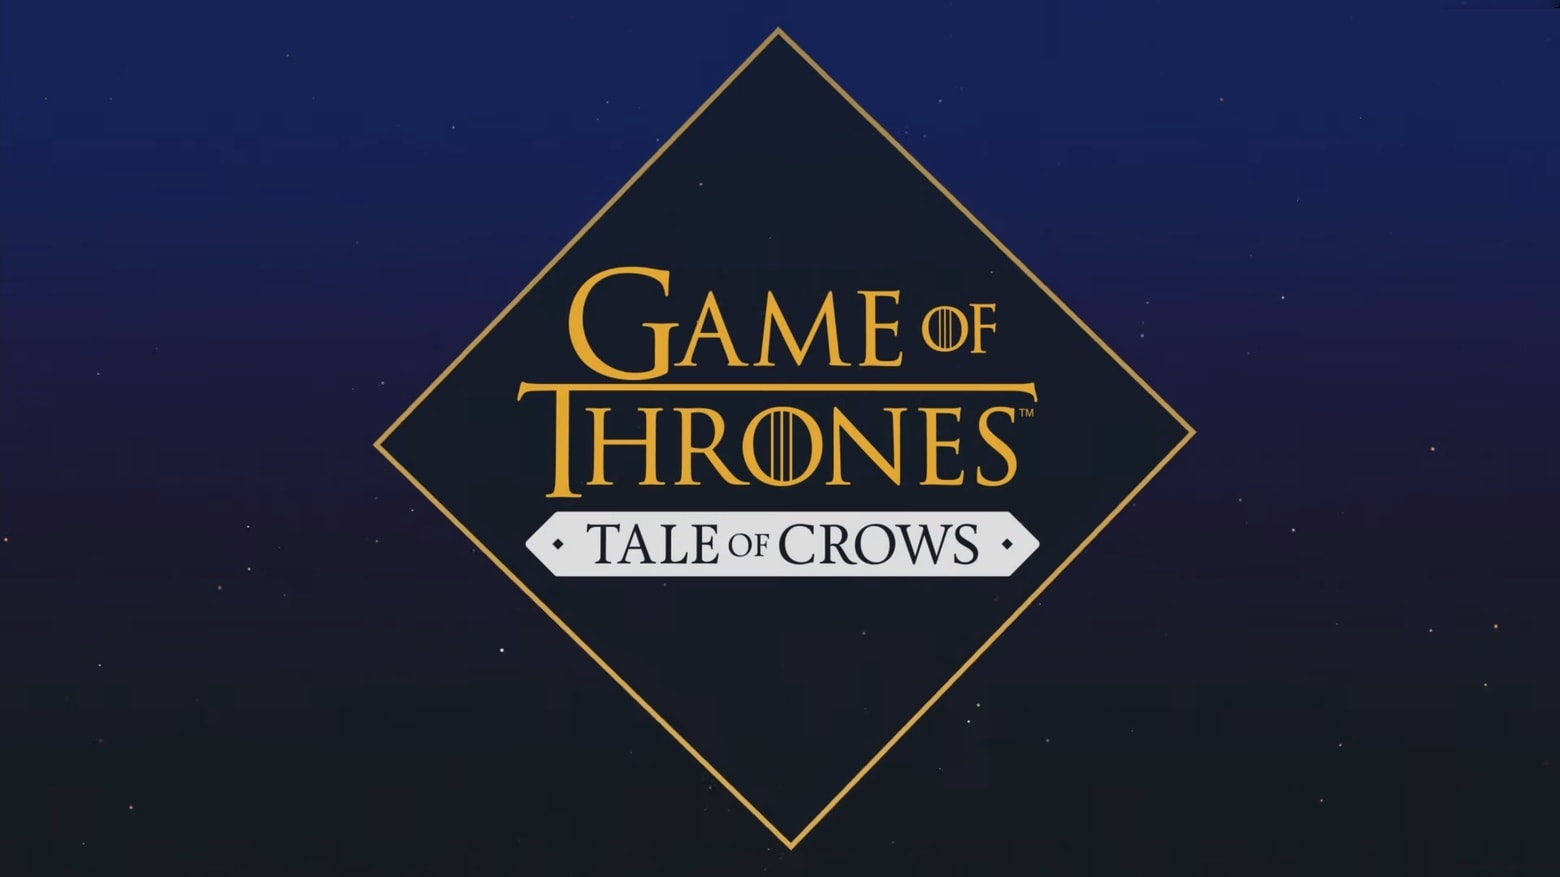 Join the Night's Watch in Game of Thrones: Tale of Crows on Apple Arcade